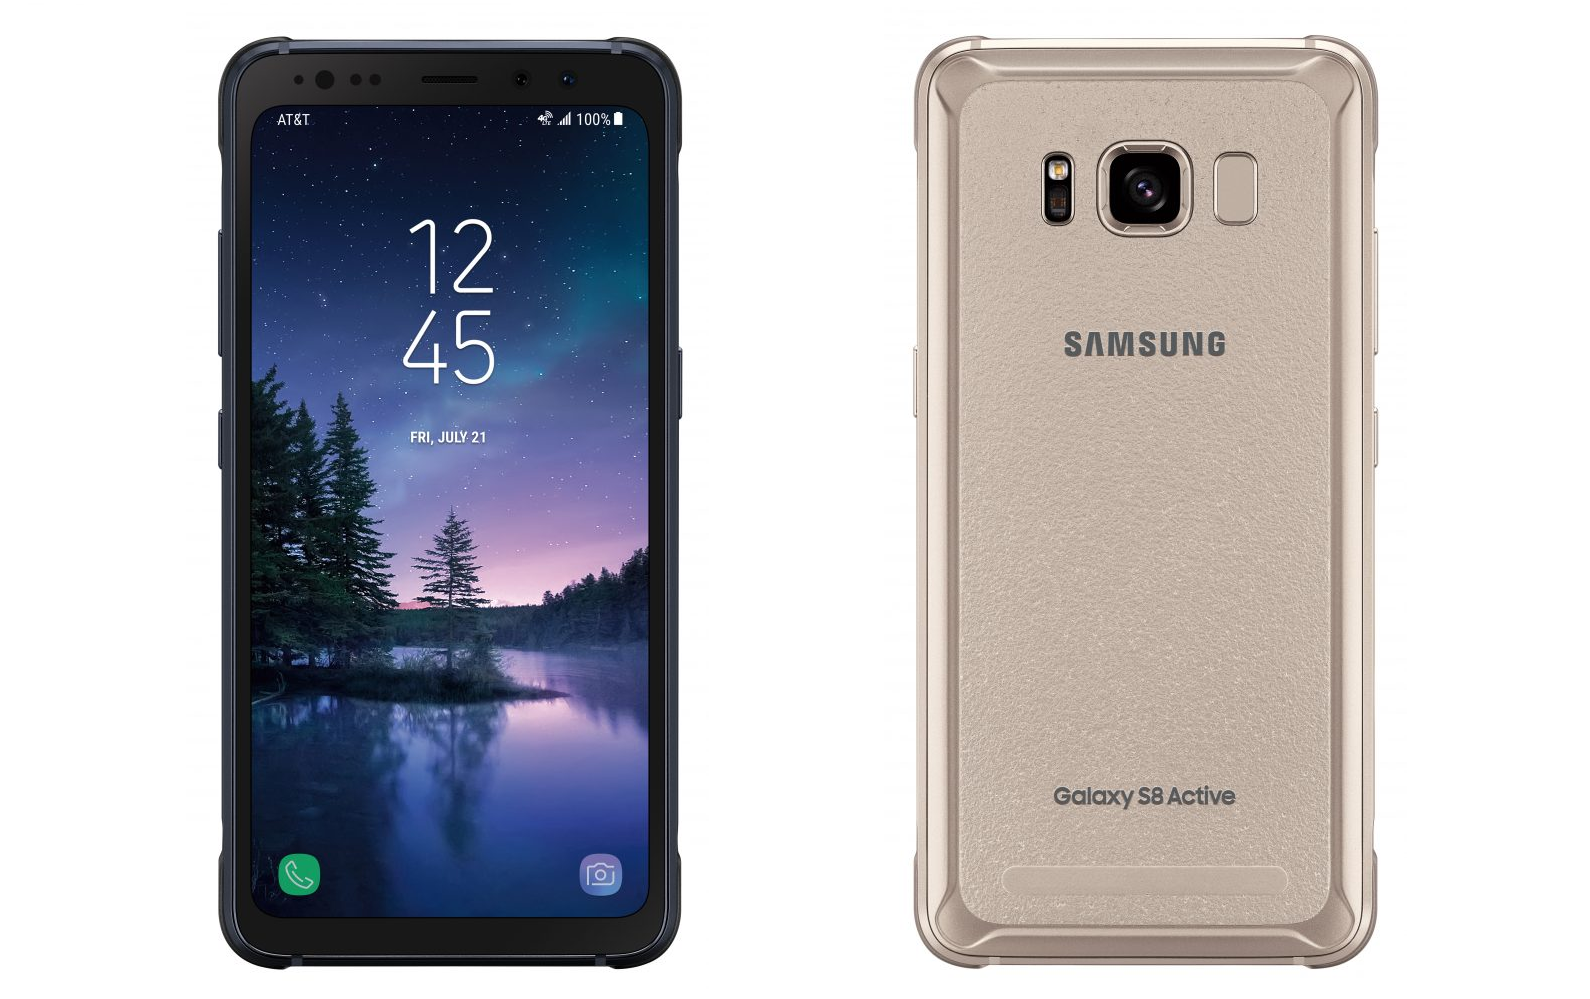 Samsung Announces Preorder for Galaxy S8 Active